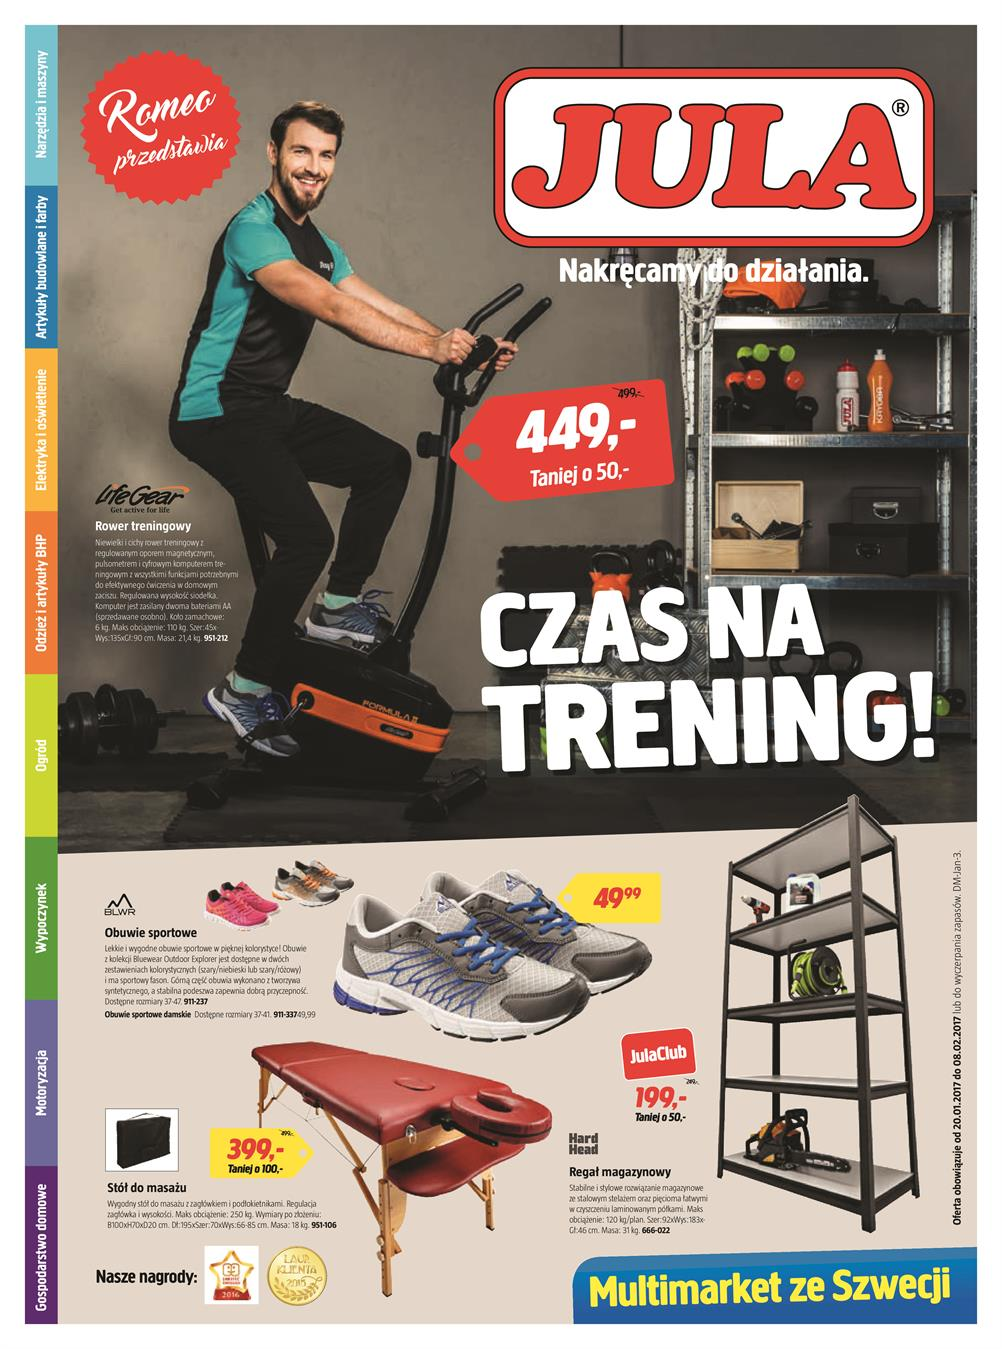 Gazetka Jula Poland Sp. z o.o. nr 1 od 2017-01-20 do 2017-02-08